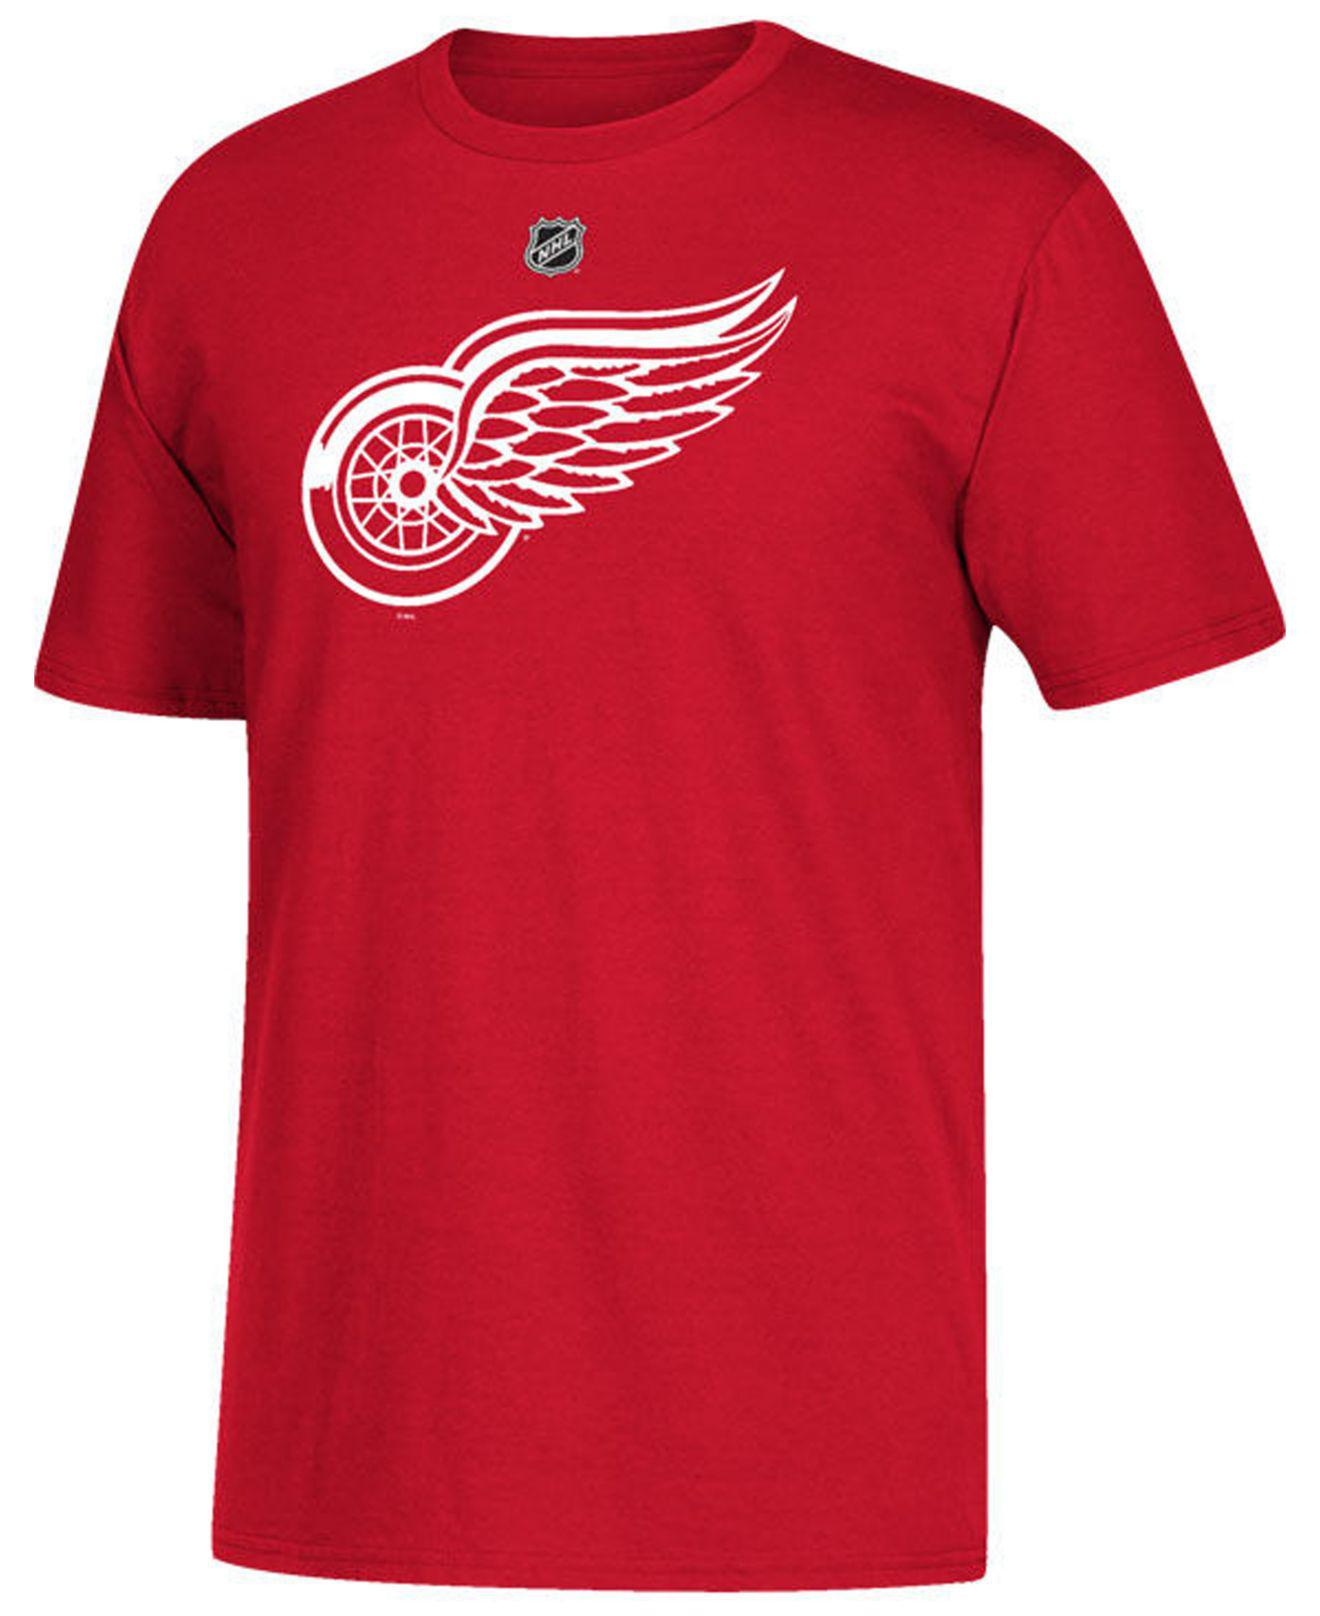 38d3d32c6 Lyst - adidas Tomas Tatar Detroit Red Wings Silver Player T-shirt in ...